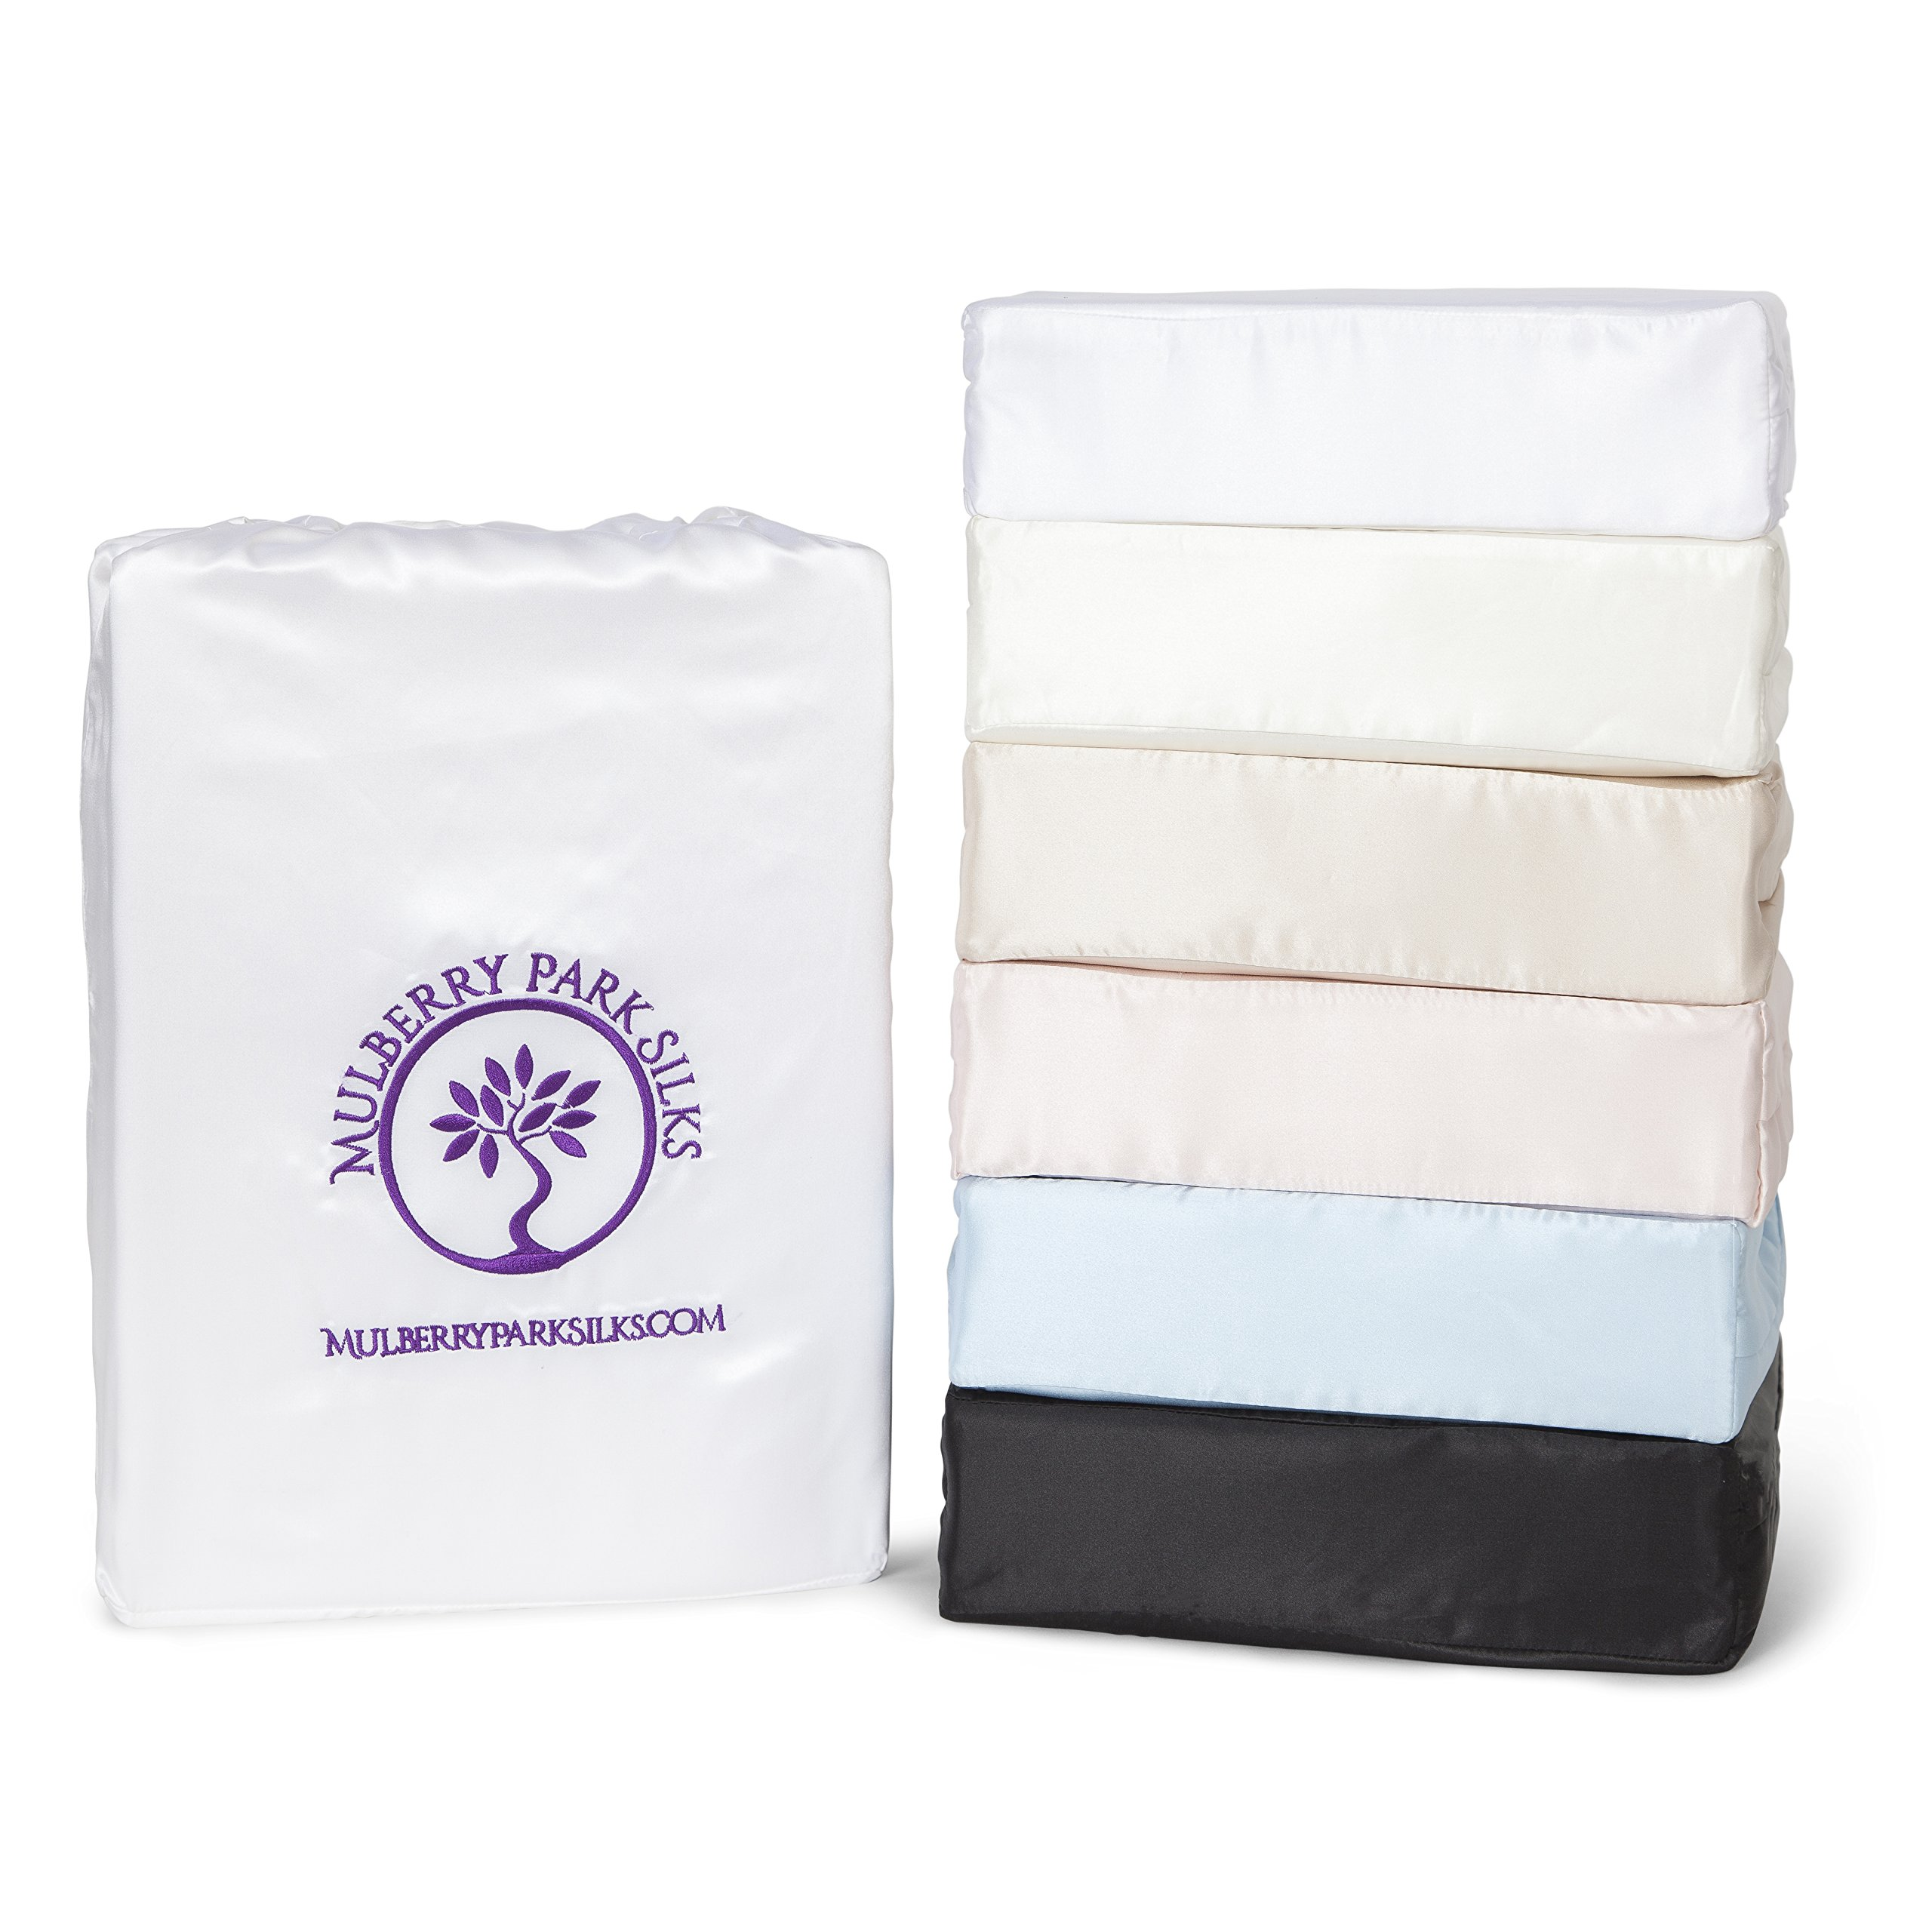 Twin Silk Sheet Set (15'' Pocket) - White - DELUXE 22 Momme 100% Pure Mulberry Charmeuse Natural Bedding - OEKO-TEX Certified - Seamless by Mulberry Park Silks (Image #1)